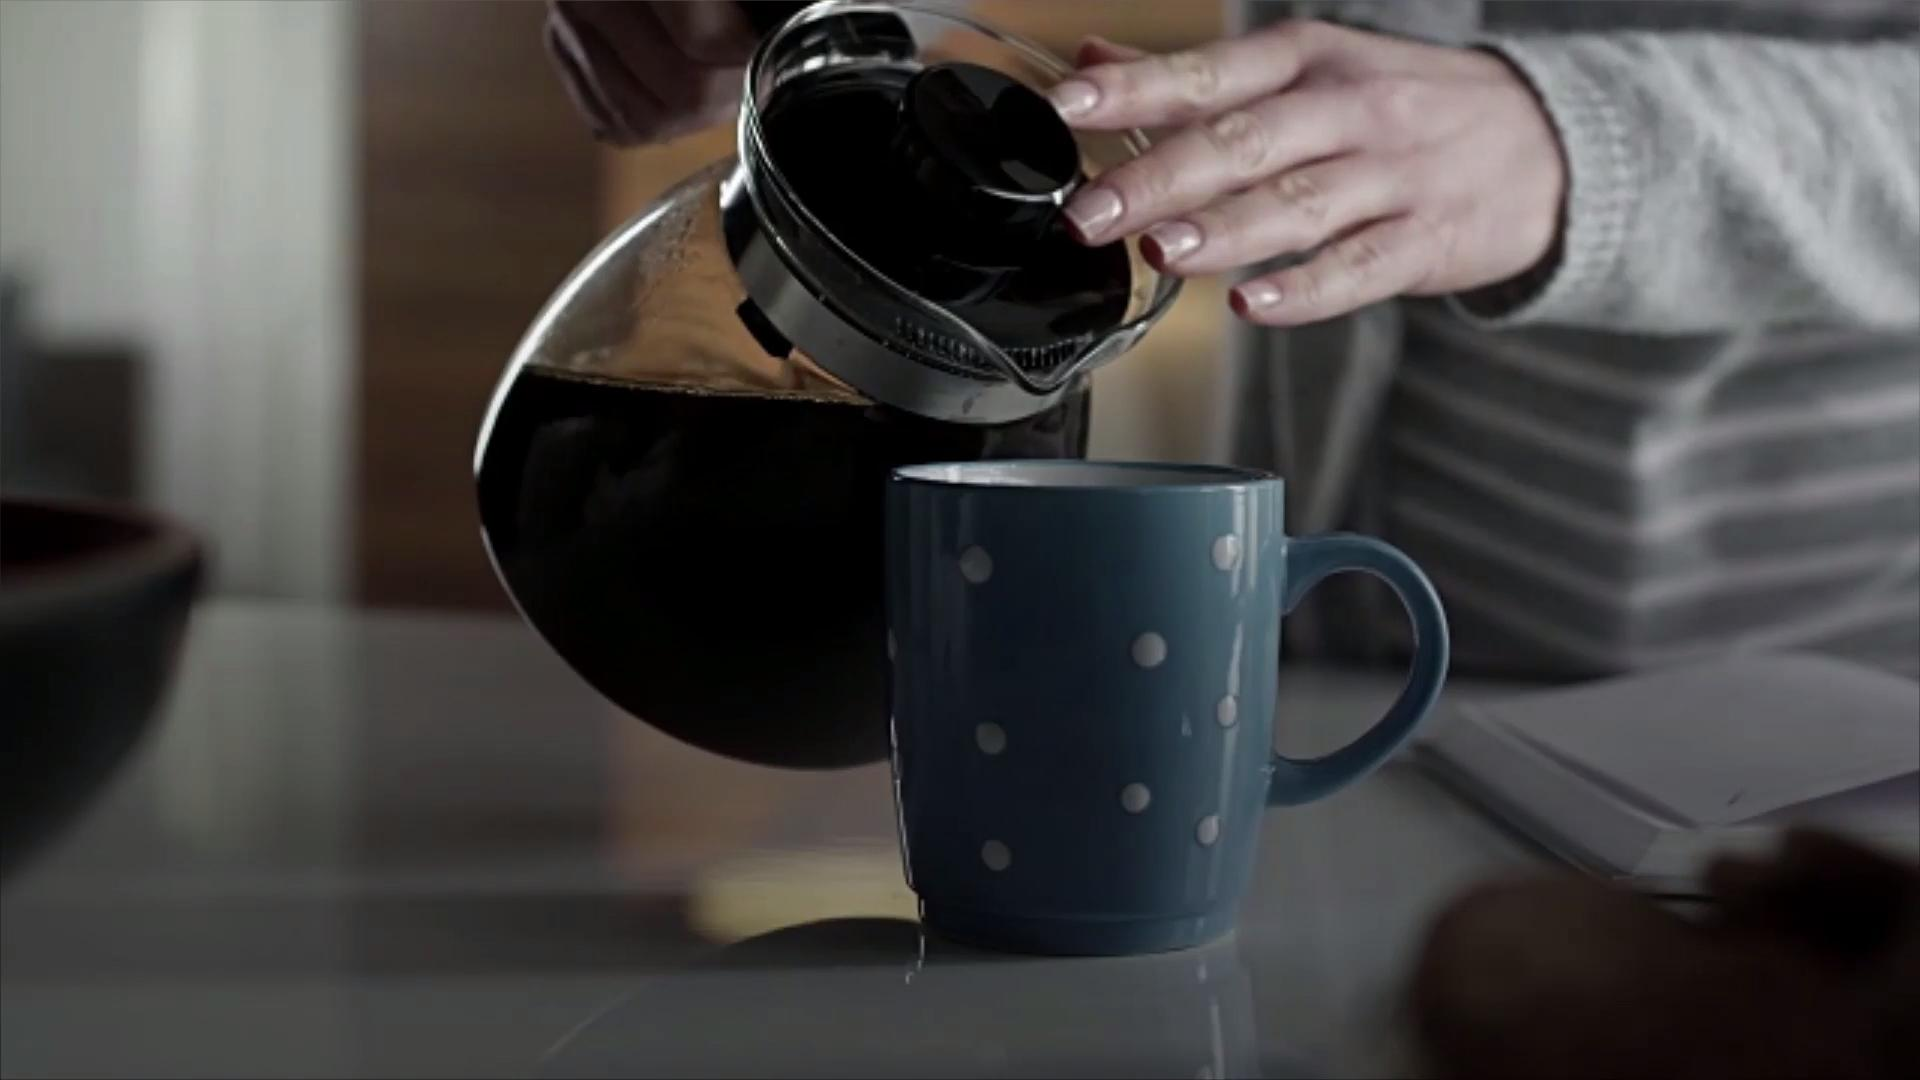 17 Surprising Foods You Can Cook with a Coffee Maker